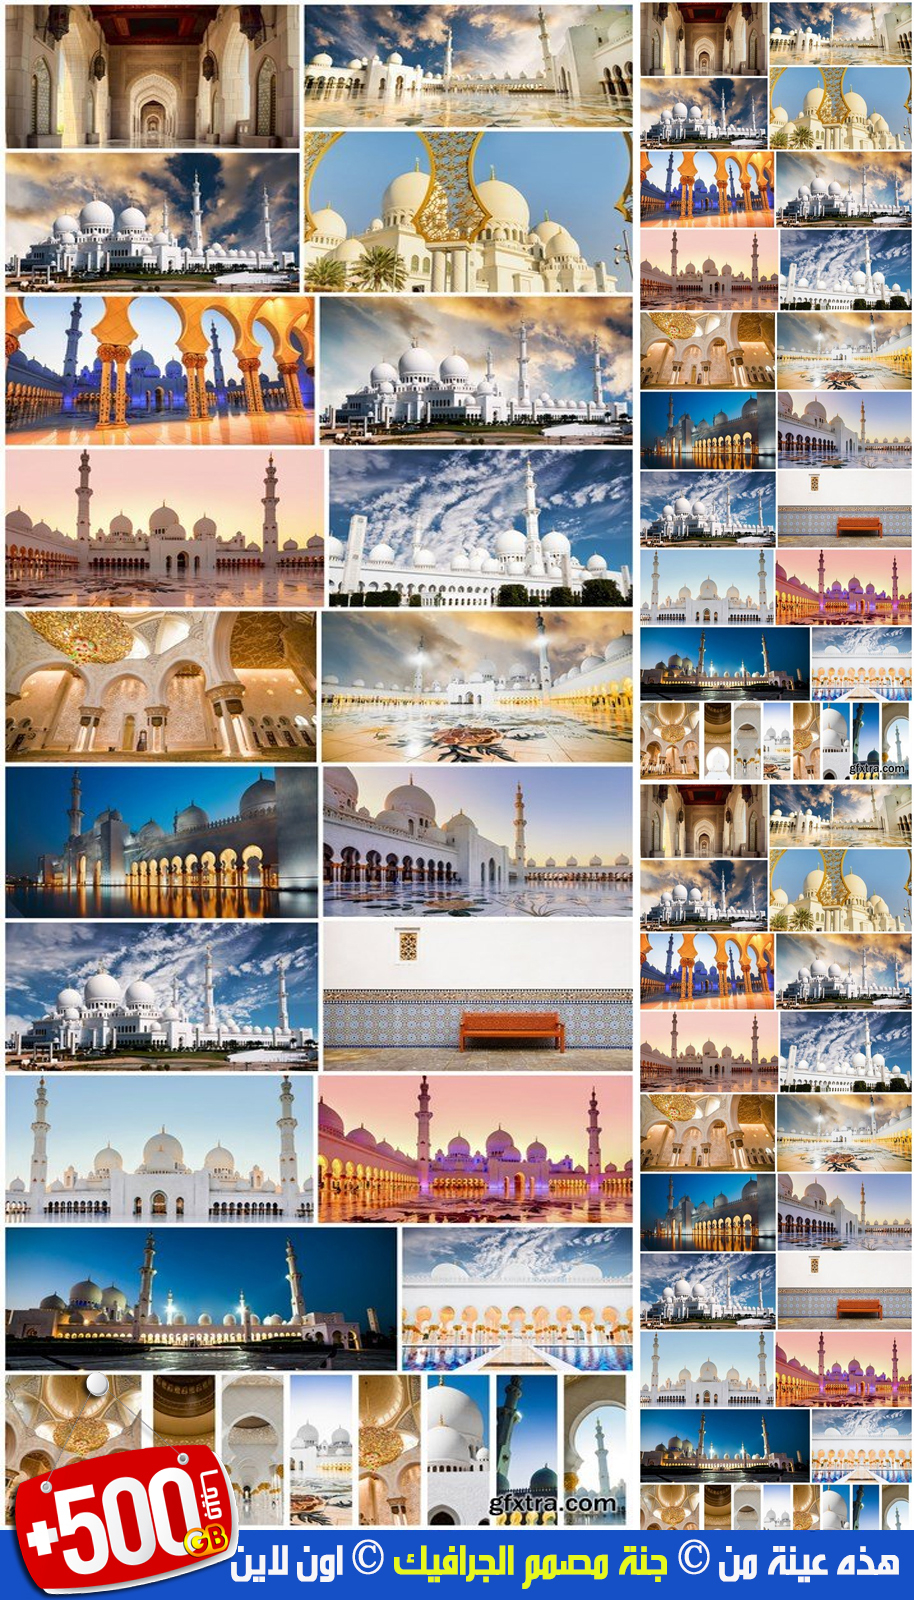 Beautiful arab & islamic architecture 2 - 20xUHQ JPEG